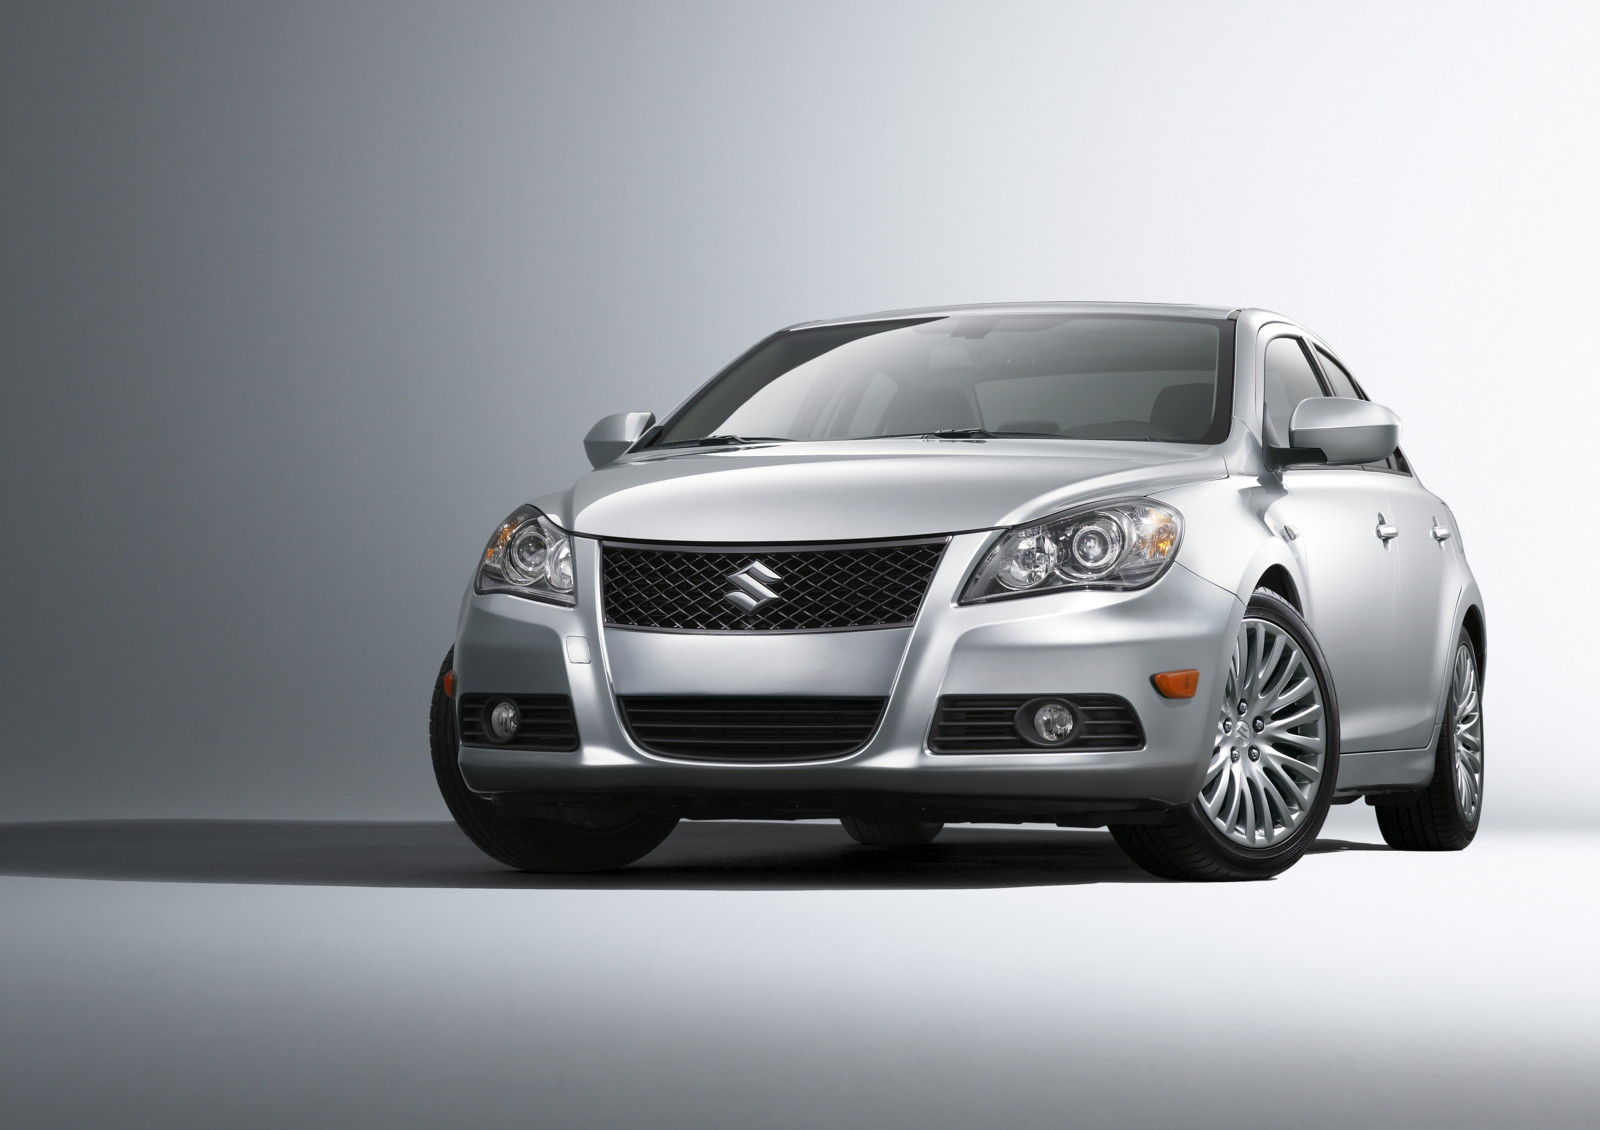 hight resolution of new 2010 suzuki kizashi suprising source for awd sports sedan mix suzuki kizashi wiring diagram